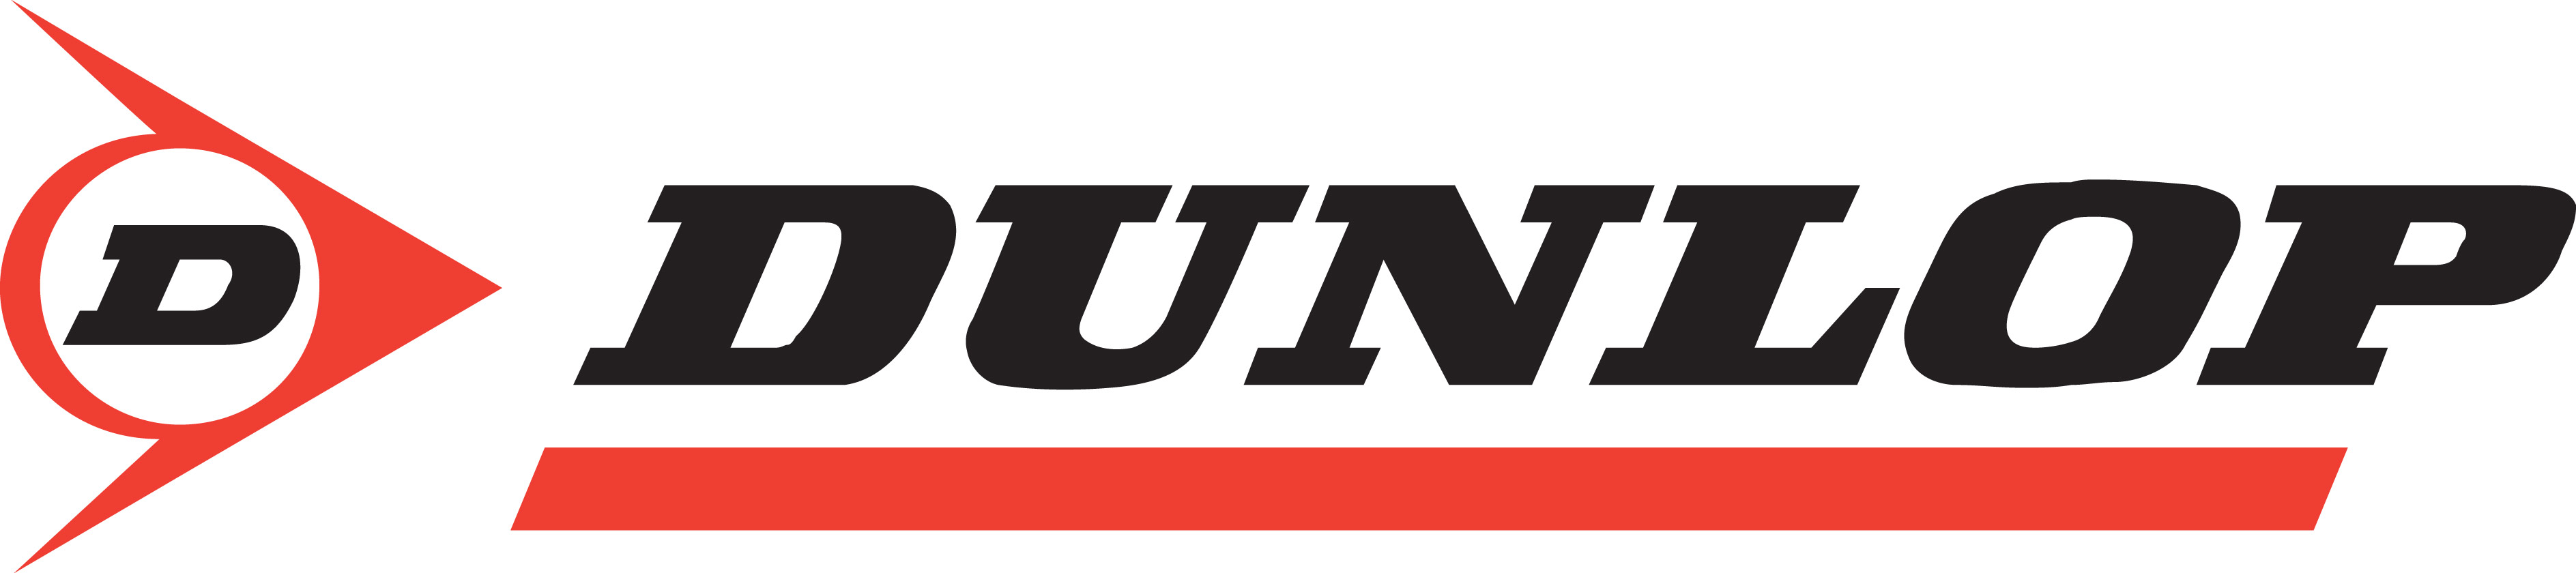 Dunlop Logo Wallpaper